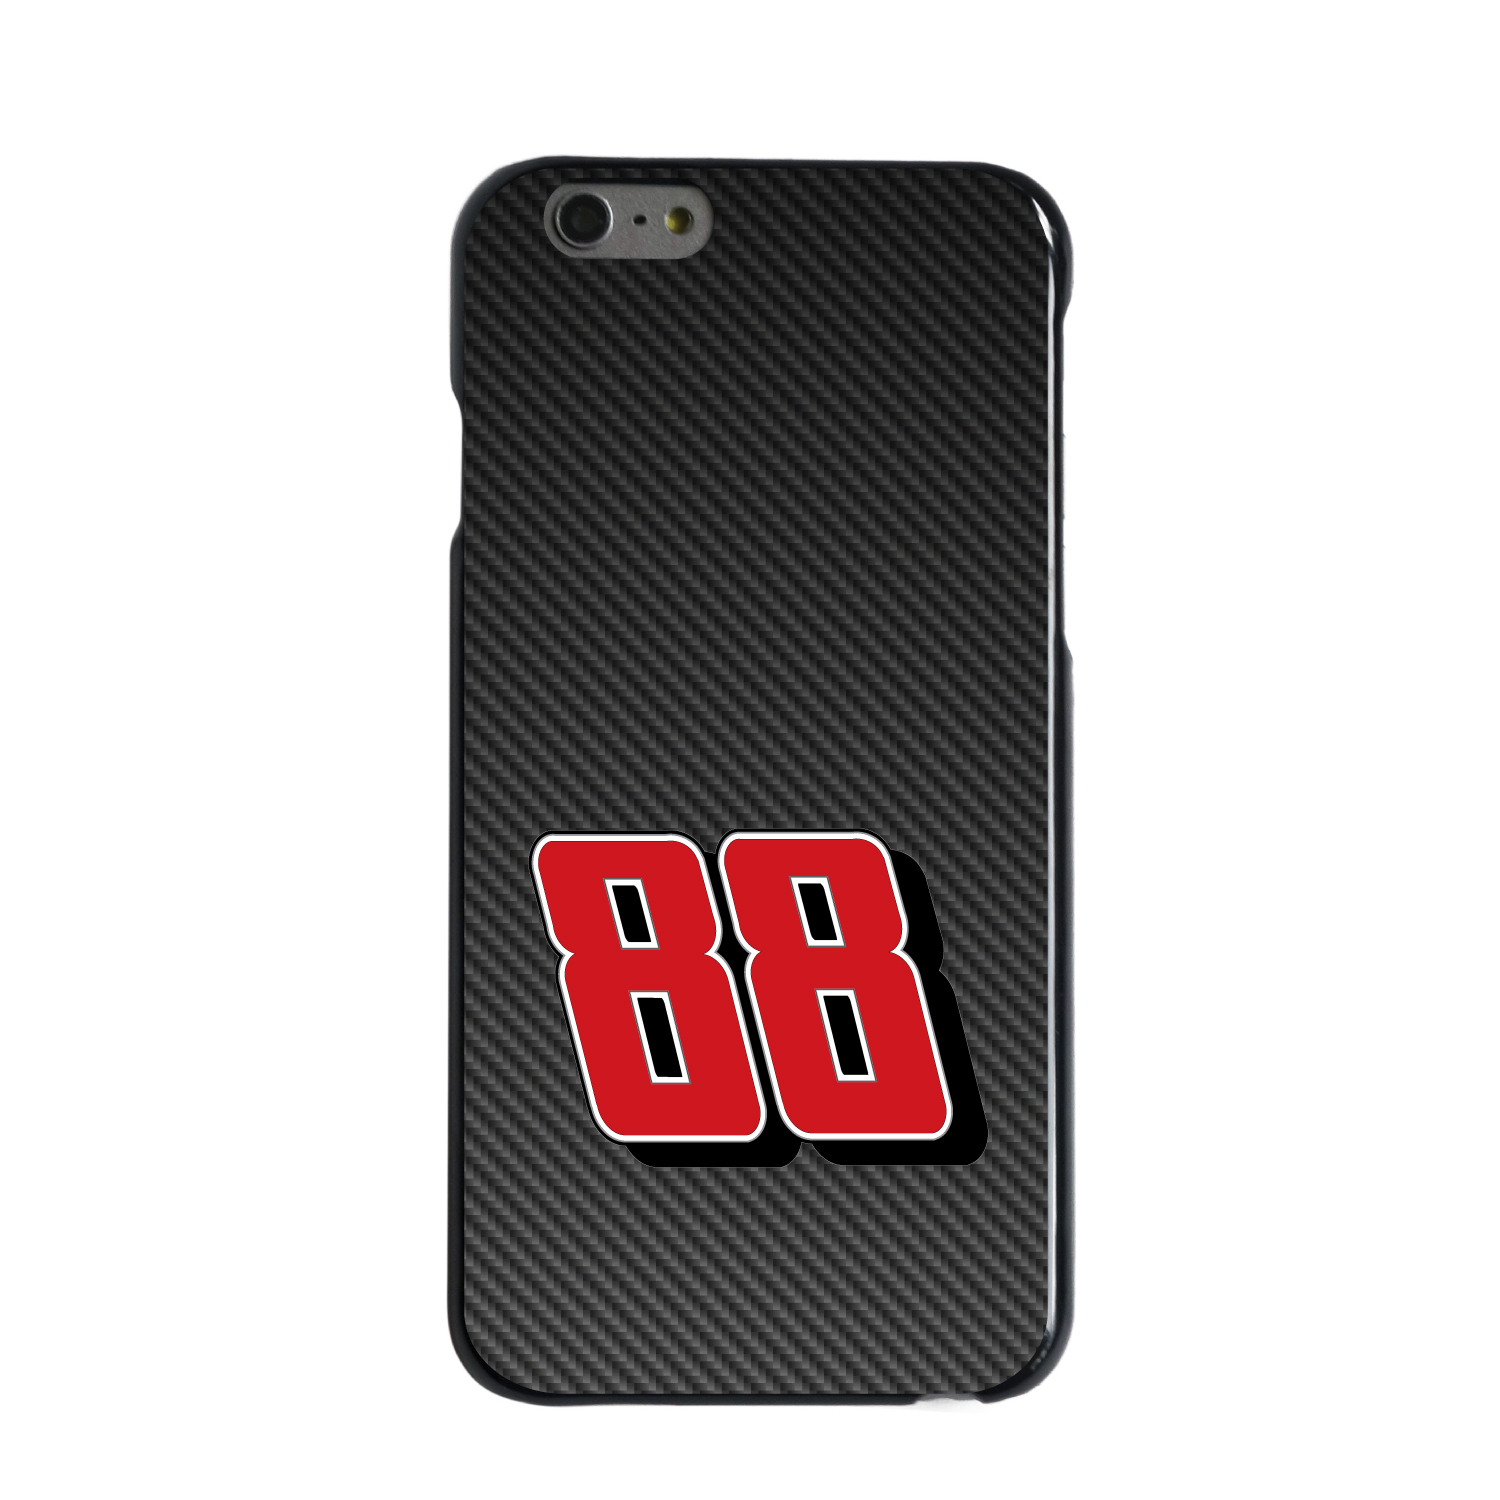 """CUSTOM Black Hard Plastic Snap-On Case for Apple iPhone 6 / 6S (4.7"""" Screen) - Race Car Number 88"""